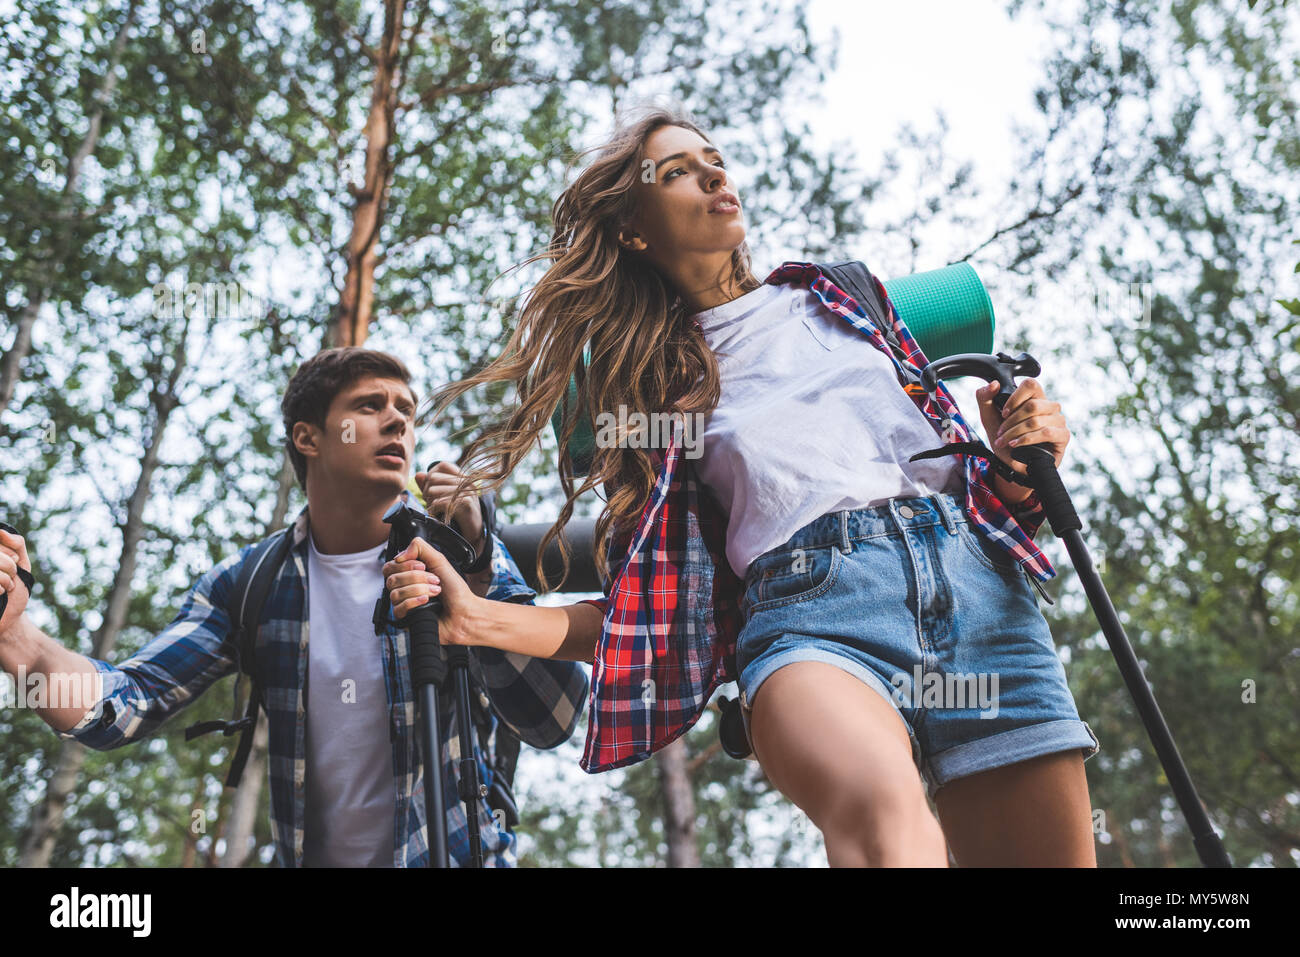 bottom view of exhausted couple on hiking trip - Stock Image